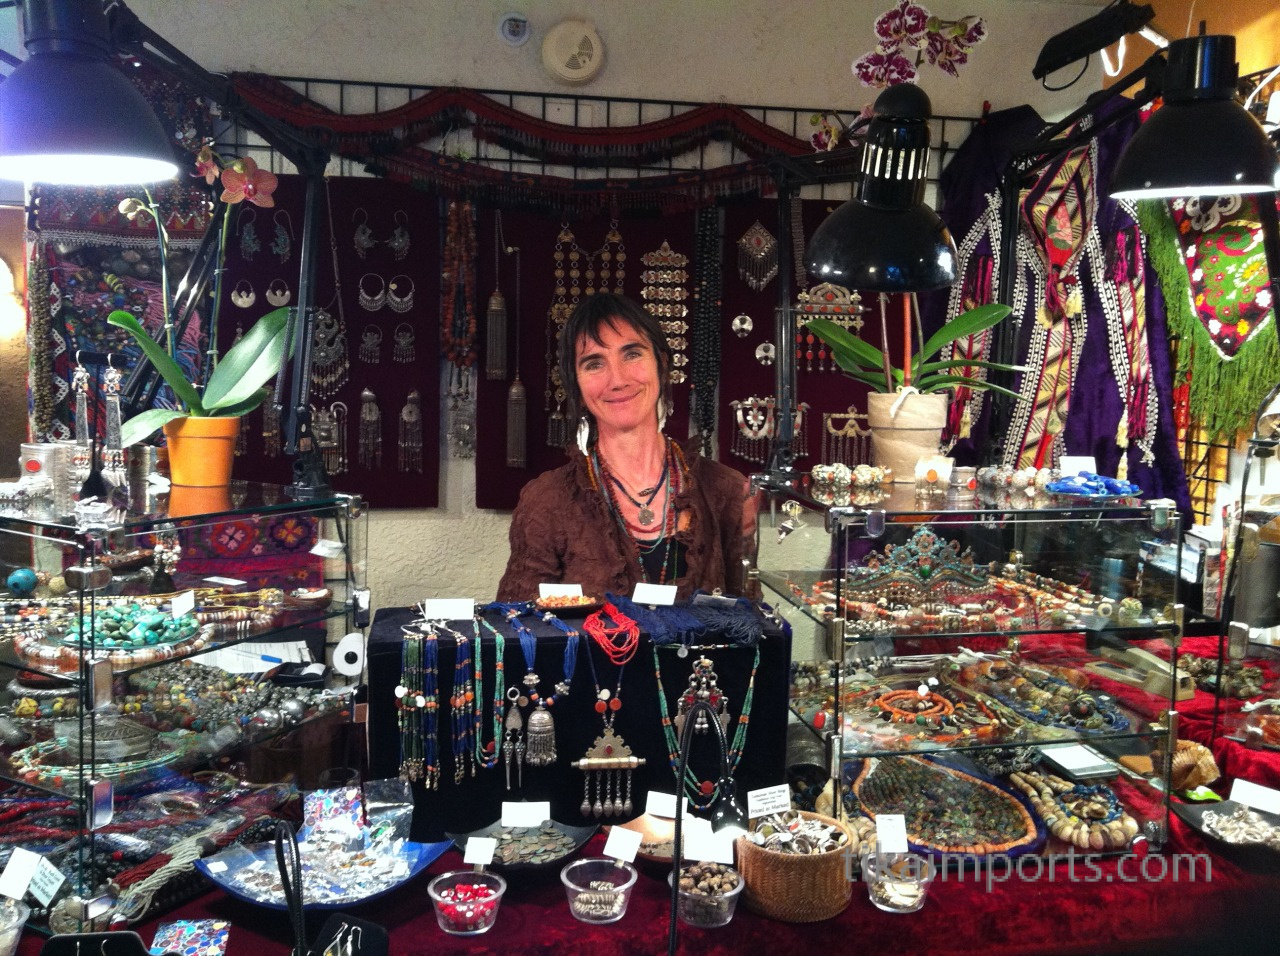 Julie surrounded by Tika merchandise